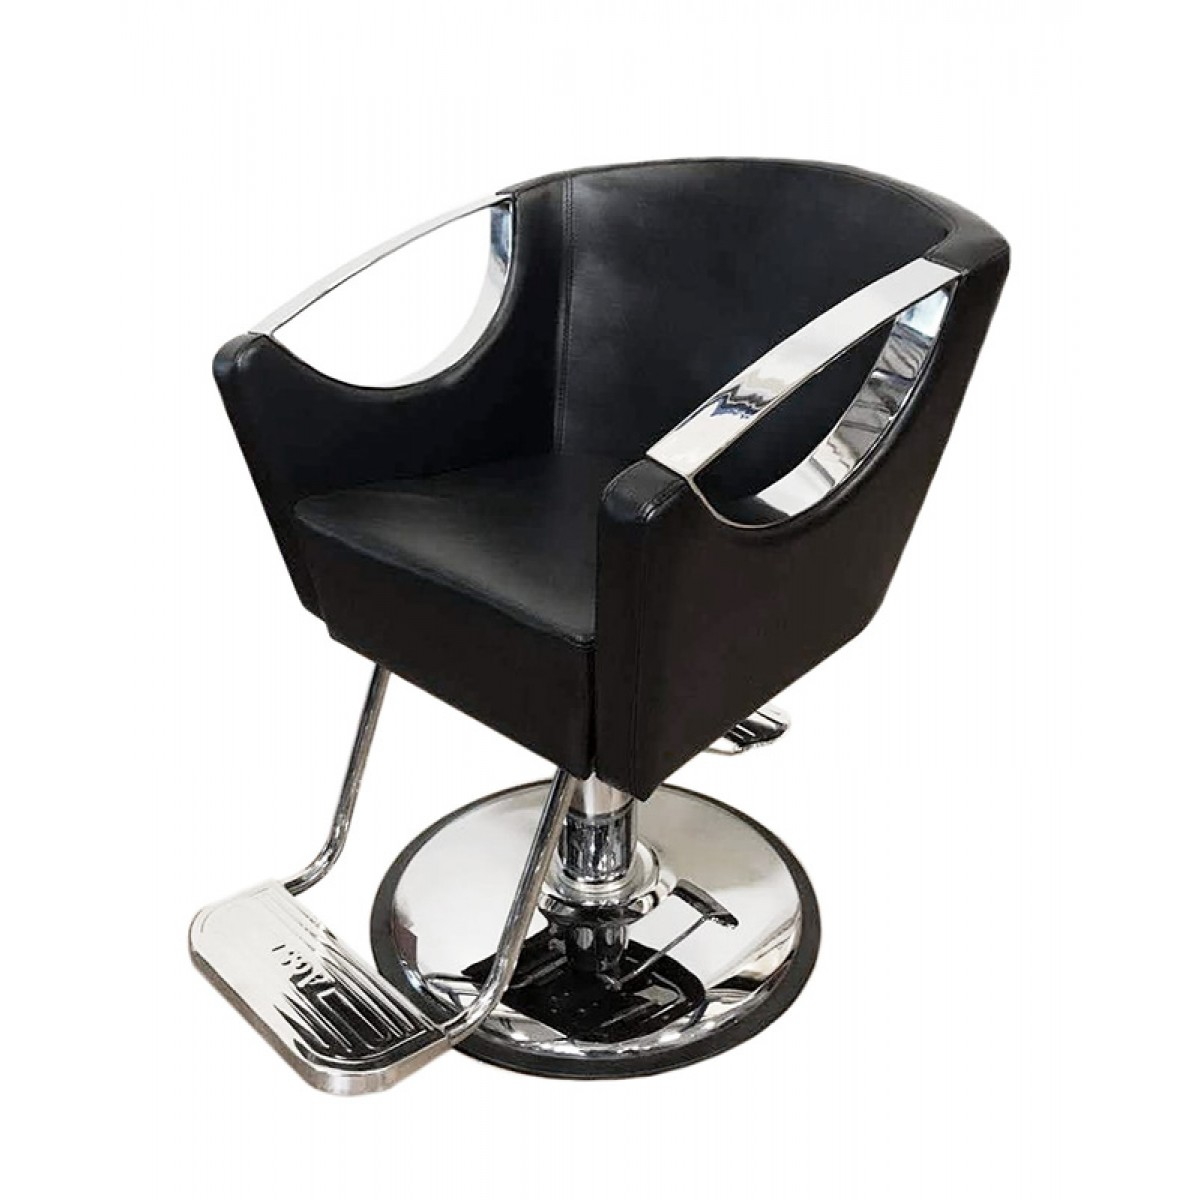 hair styling chairs for sale, salon chairs wholesale